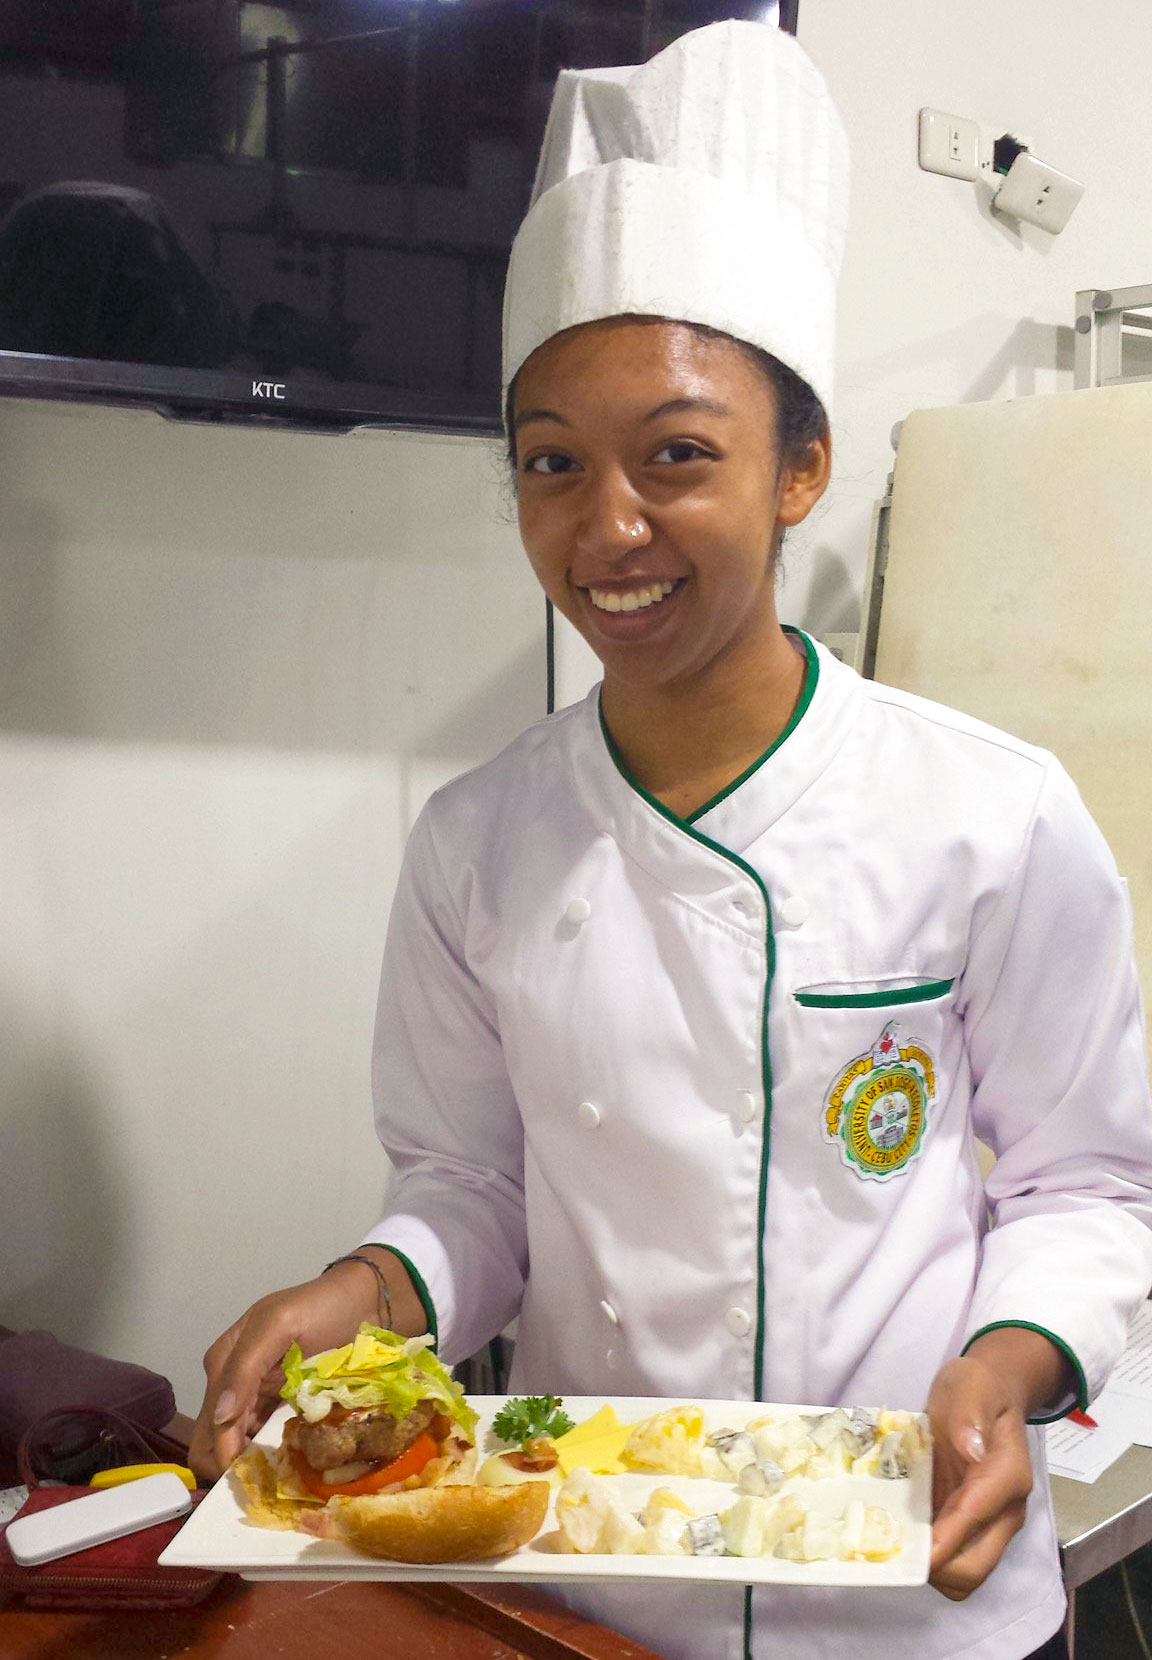 Young woman in chef attire holding plate of food